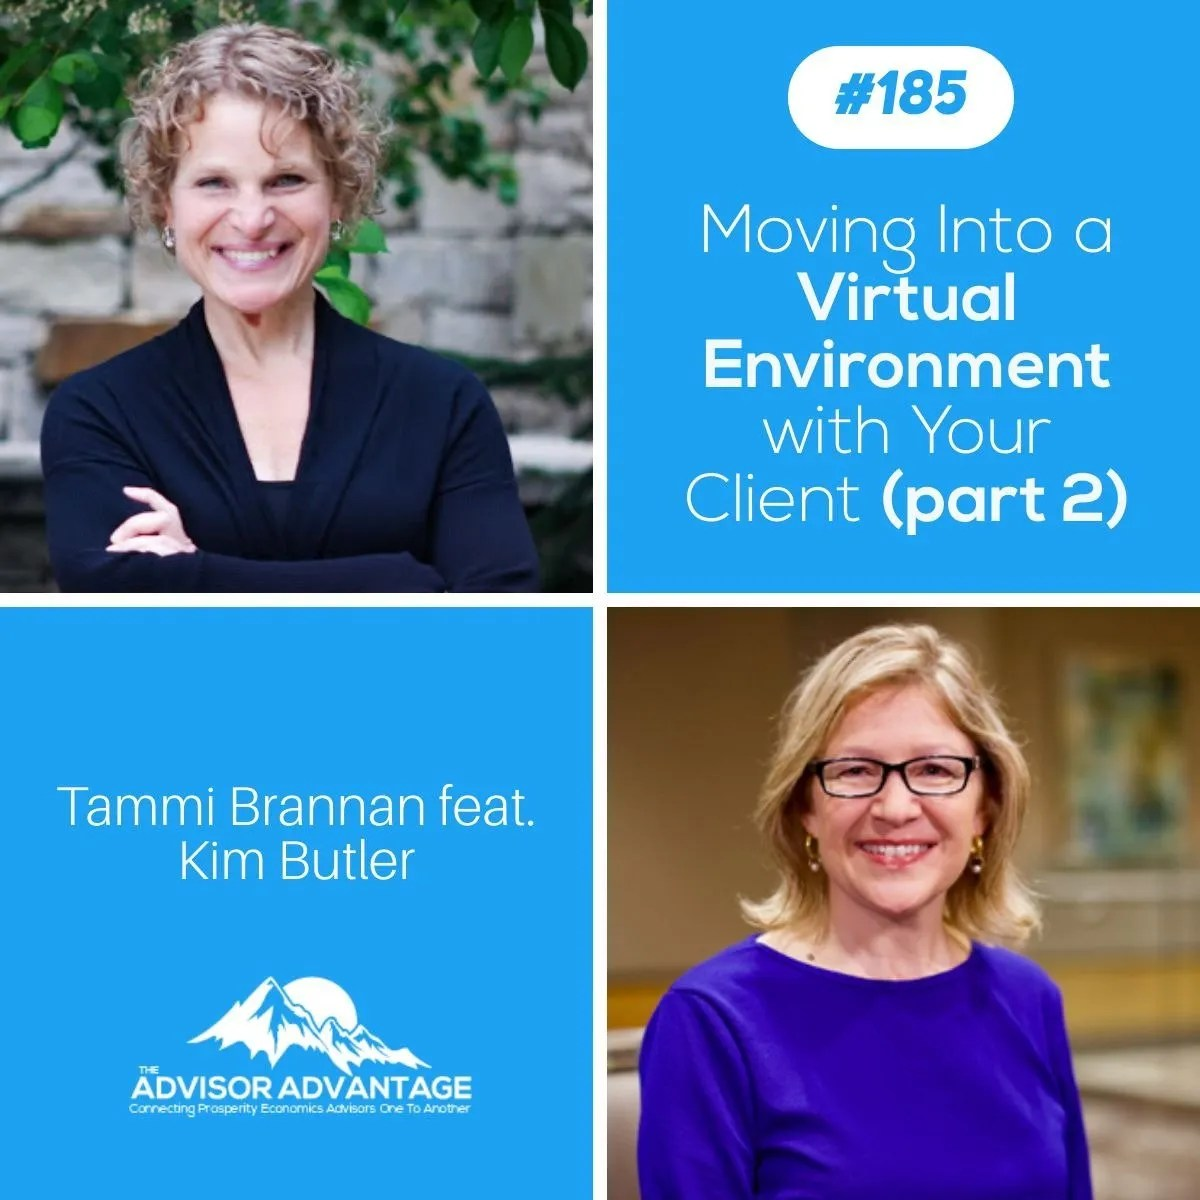 Moving Into a Virtual Environment with Your Client (part 2) – Episode 185